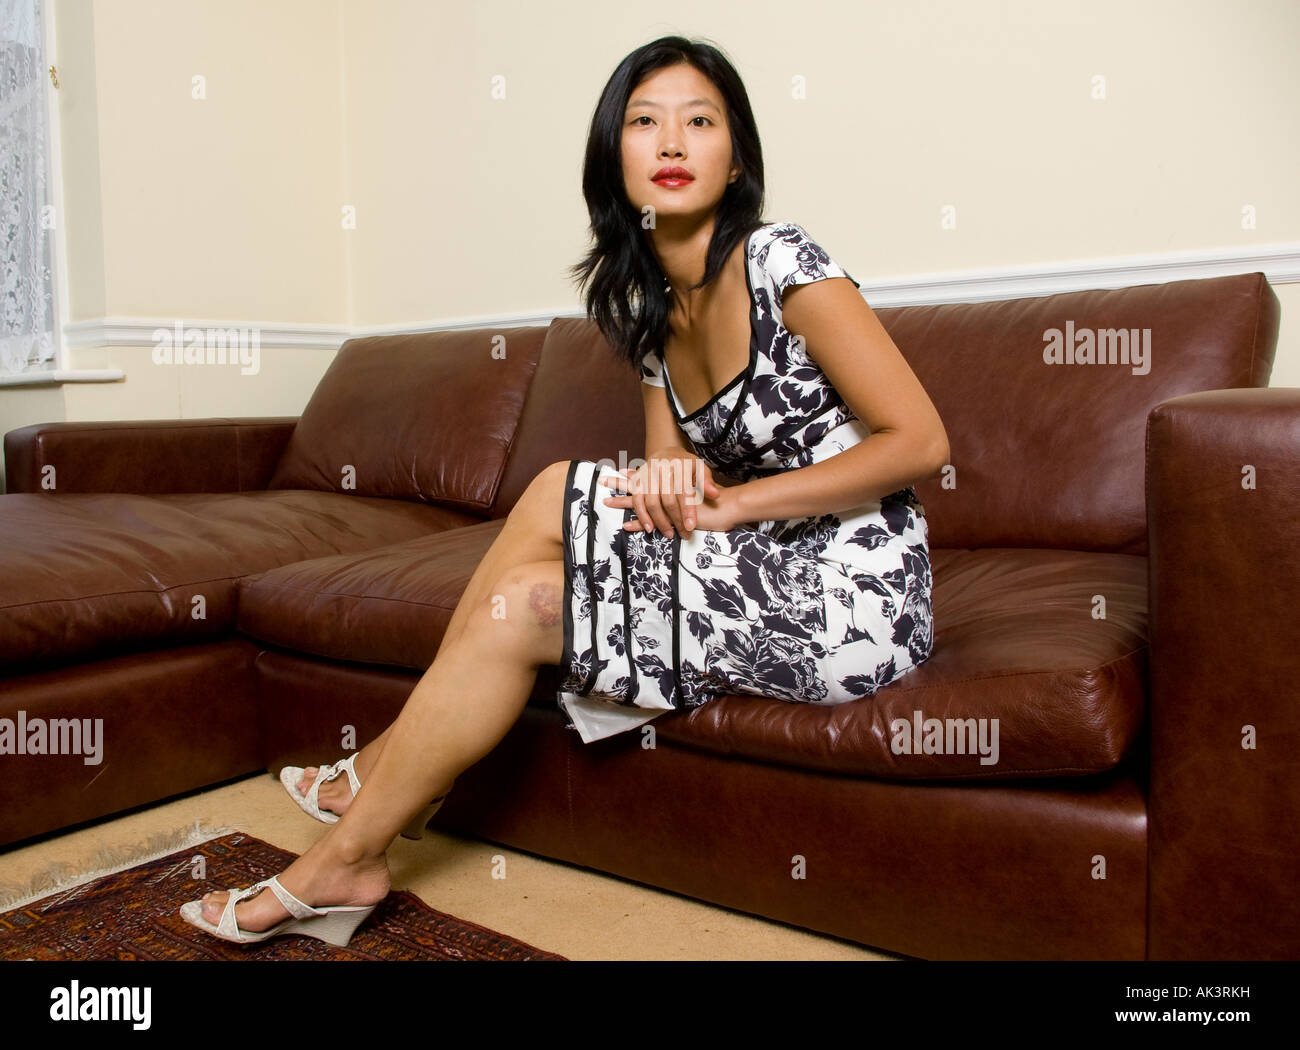 A Young Asian Woman On A Sofa At Home Showing Her Bruises